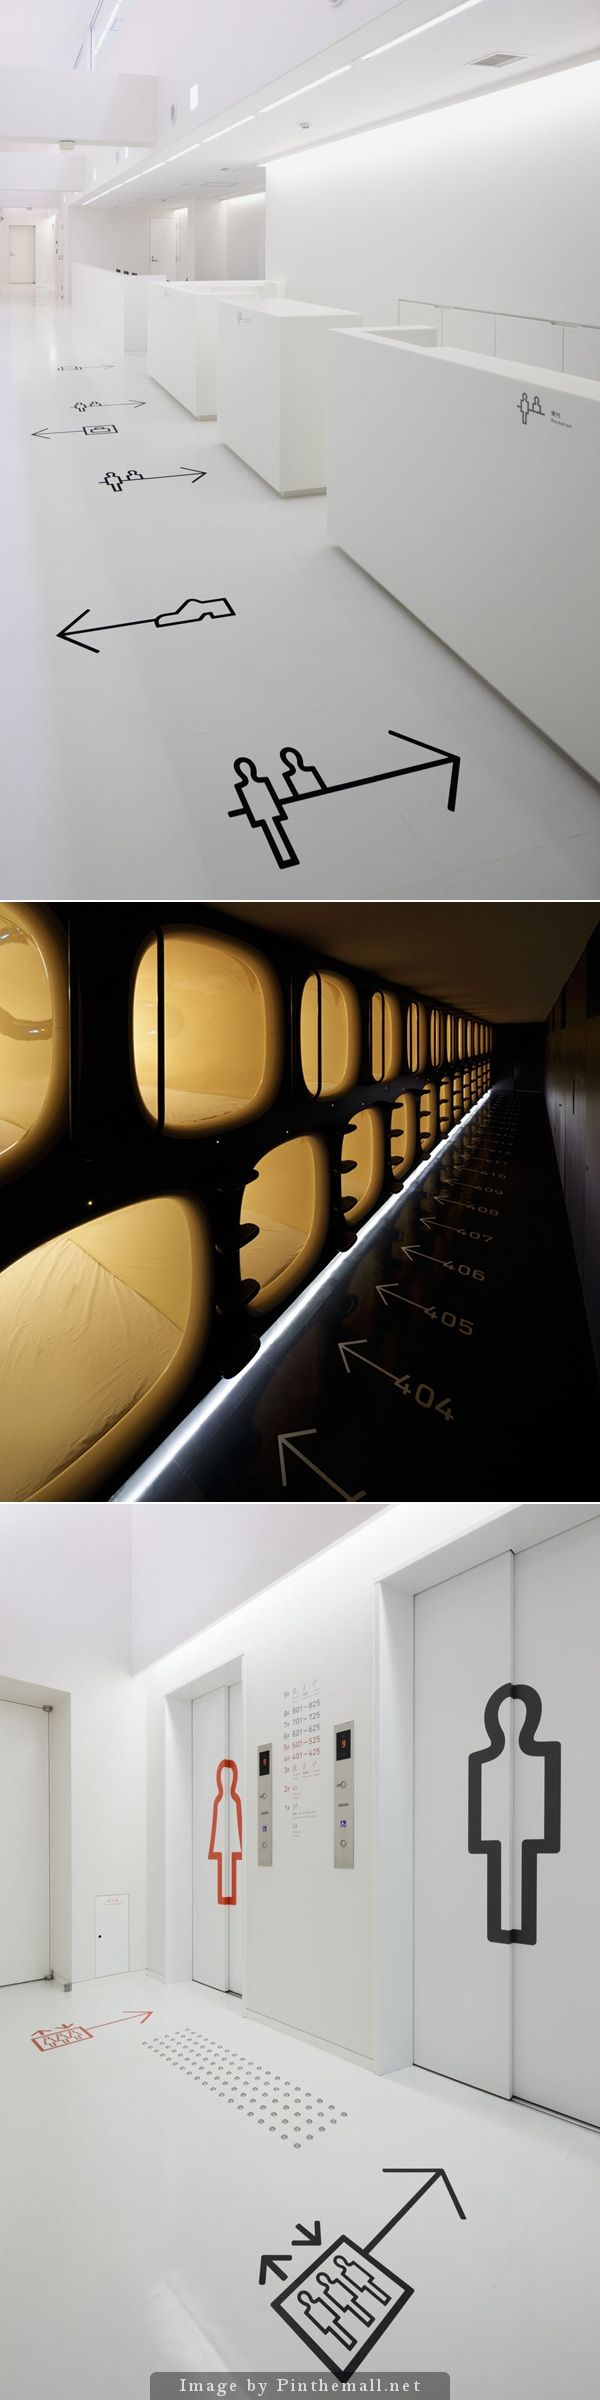 9h (Nine Hours) Japan. 9h (Nainawasu) is a capsule hotel that offers luxury in a minimum living space. The 9h capsule hotel and all amenities were designed by Fumie Shibata of Studio S, with identity and signage by Hiromura Design Office.